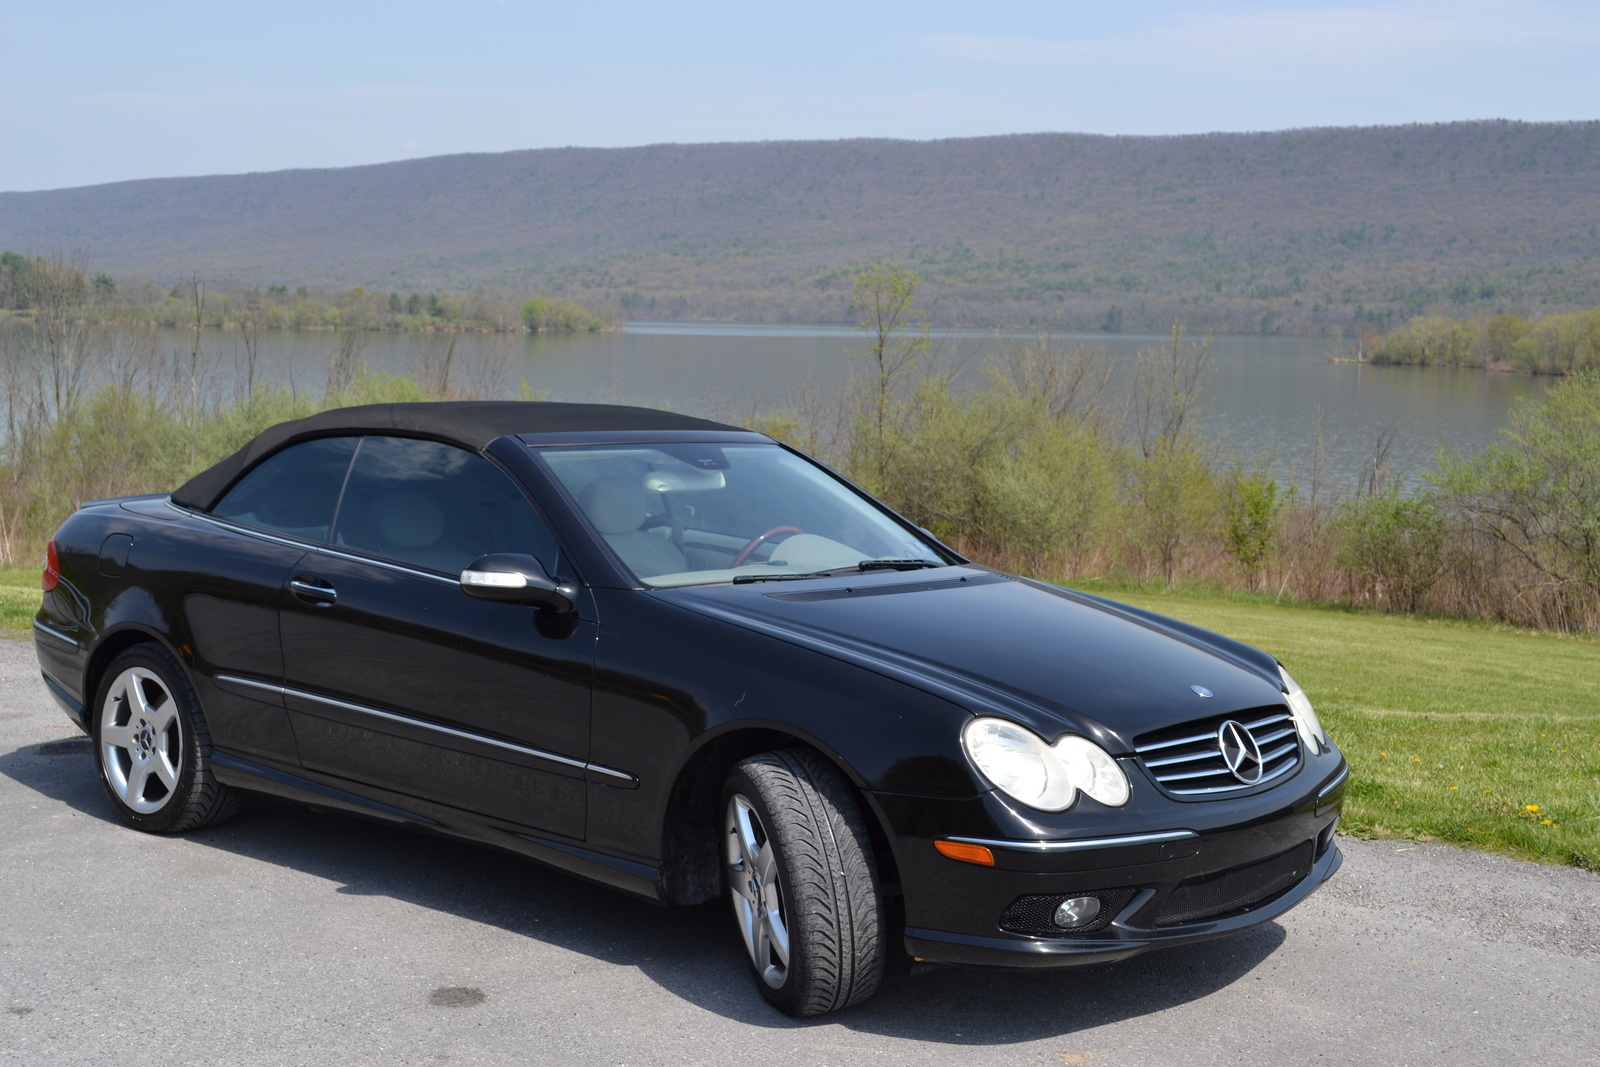 2005 mercedes benz clk class pictures cargurus for Mercedes benz clk 500